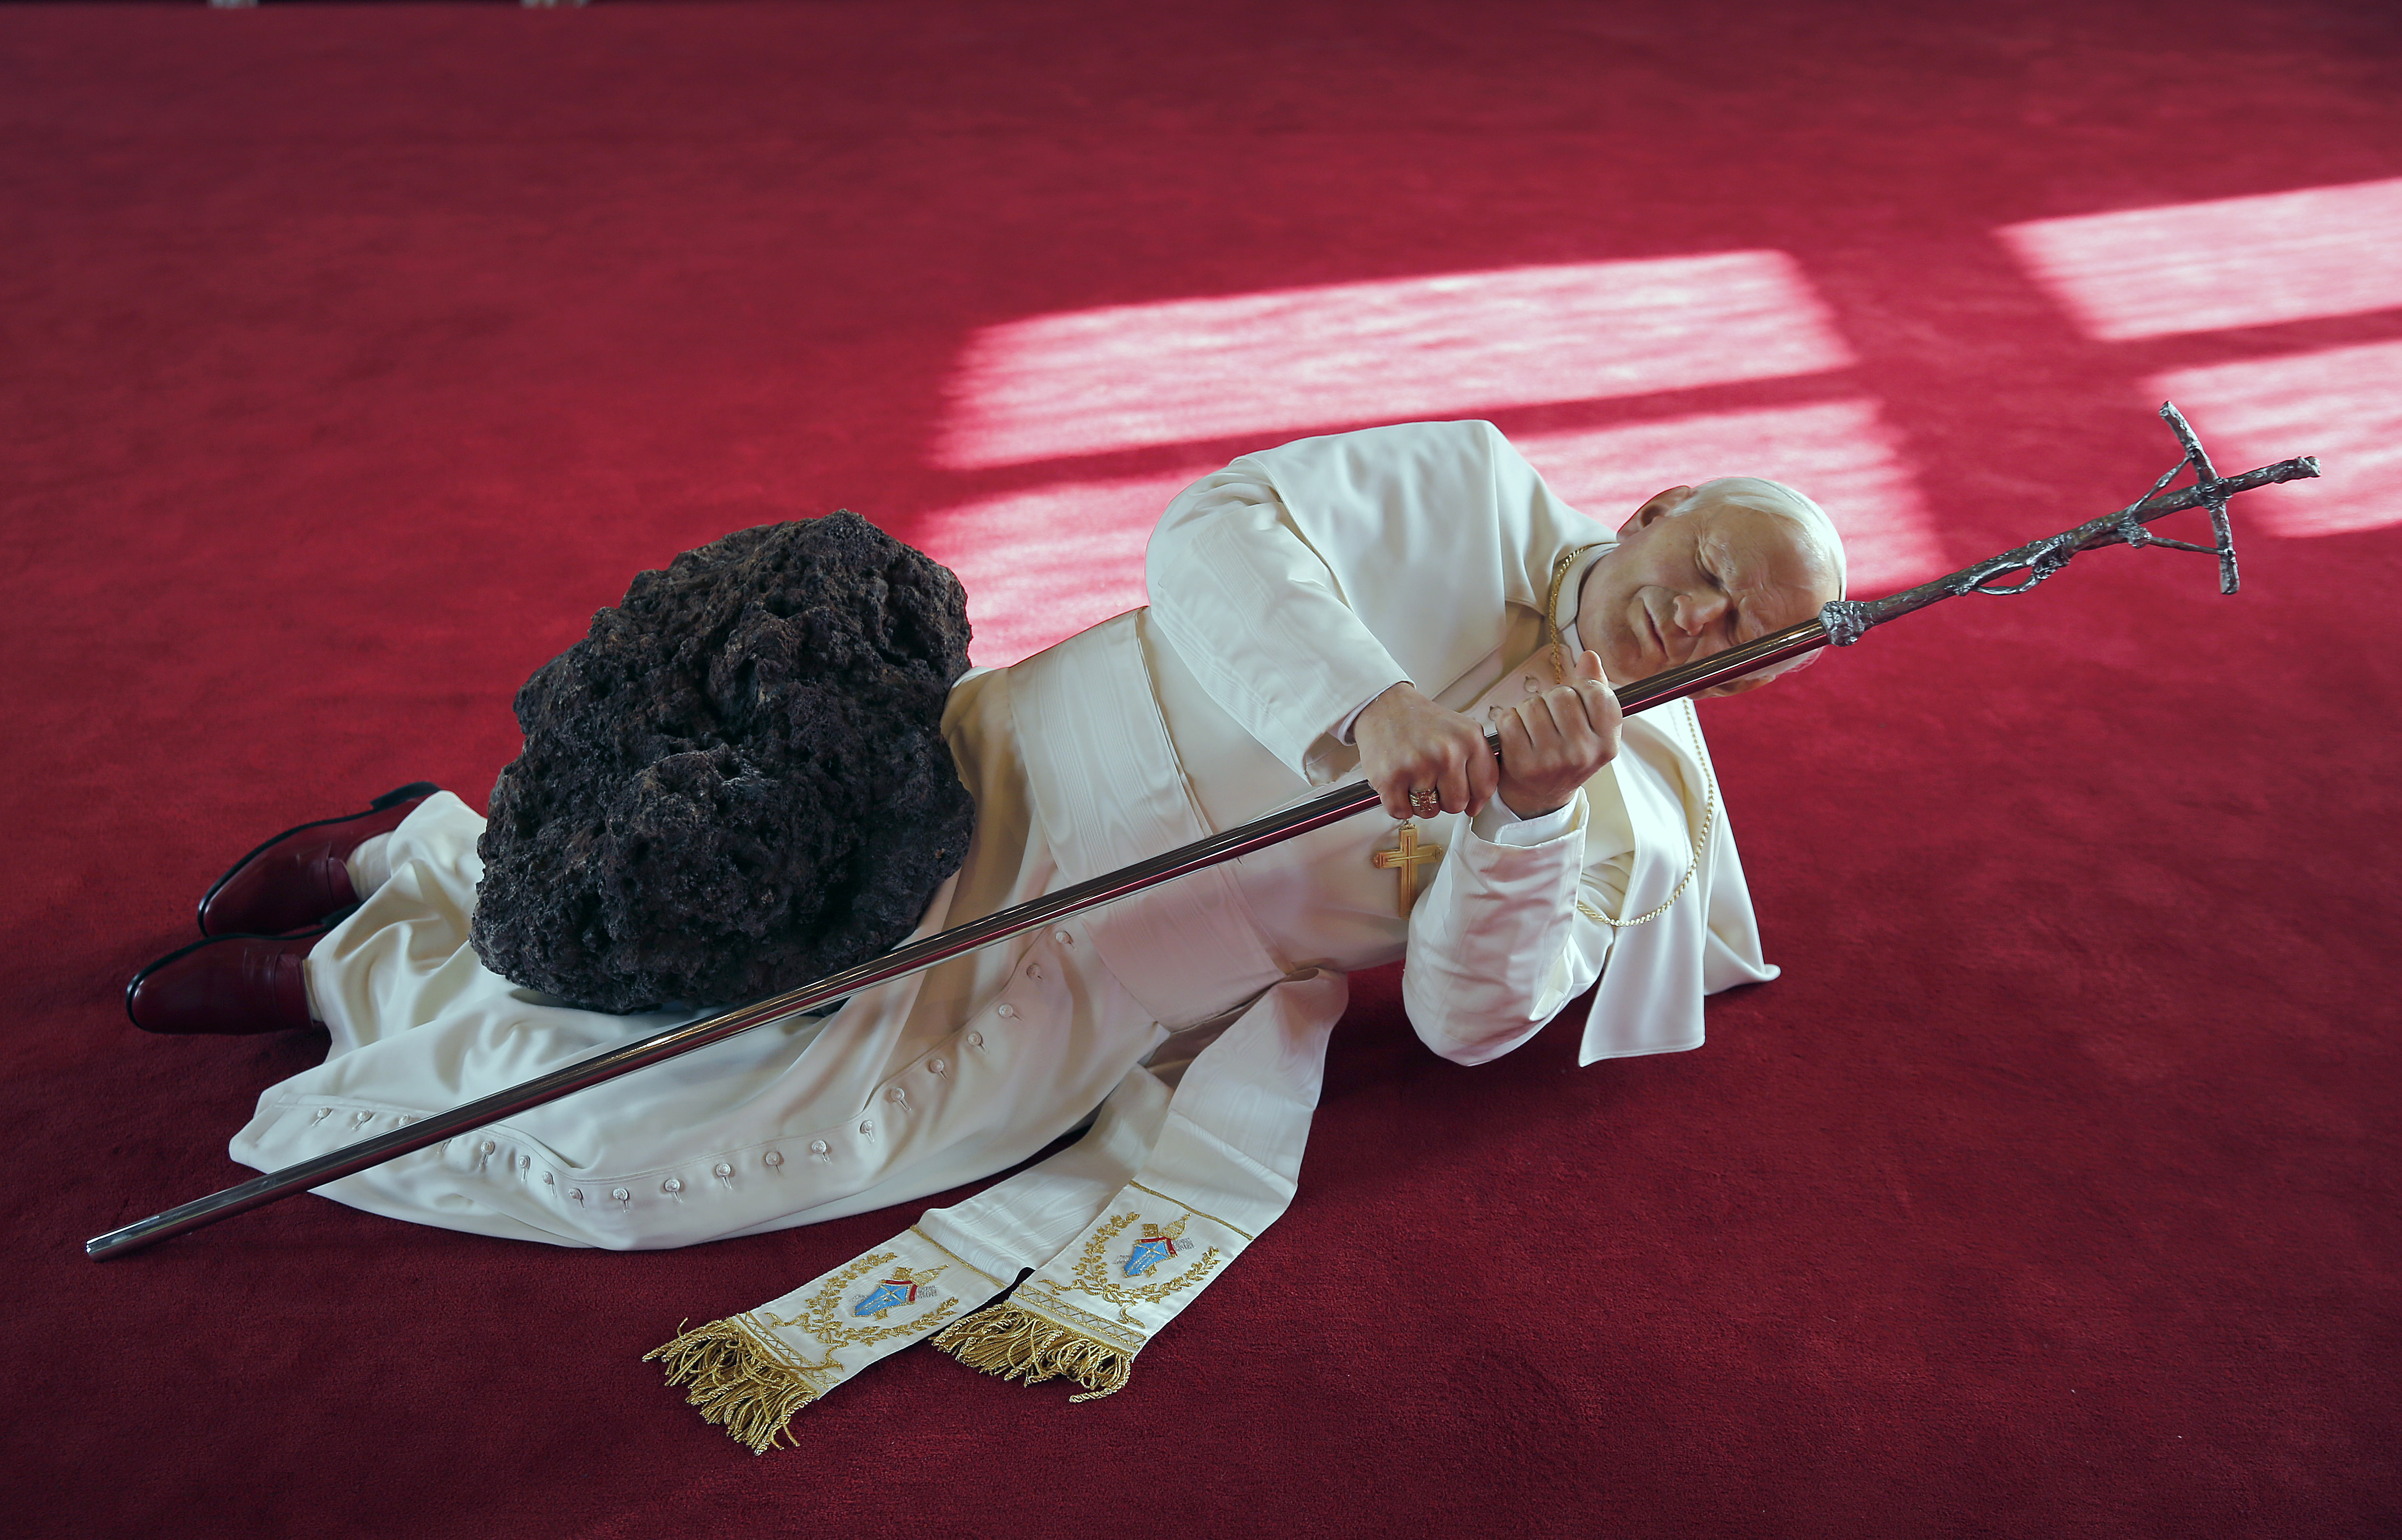 Revisiting Maurizio Cattelan's Sculpture of the Pope Struck by a